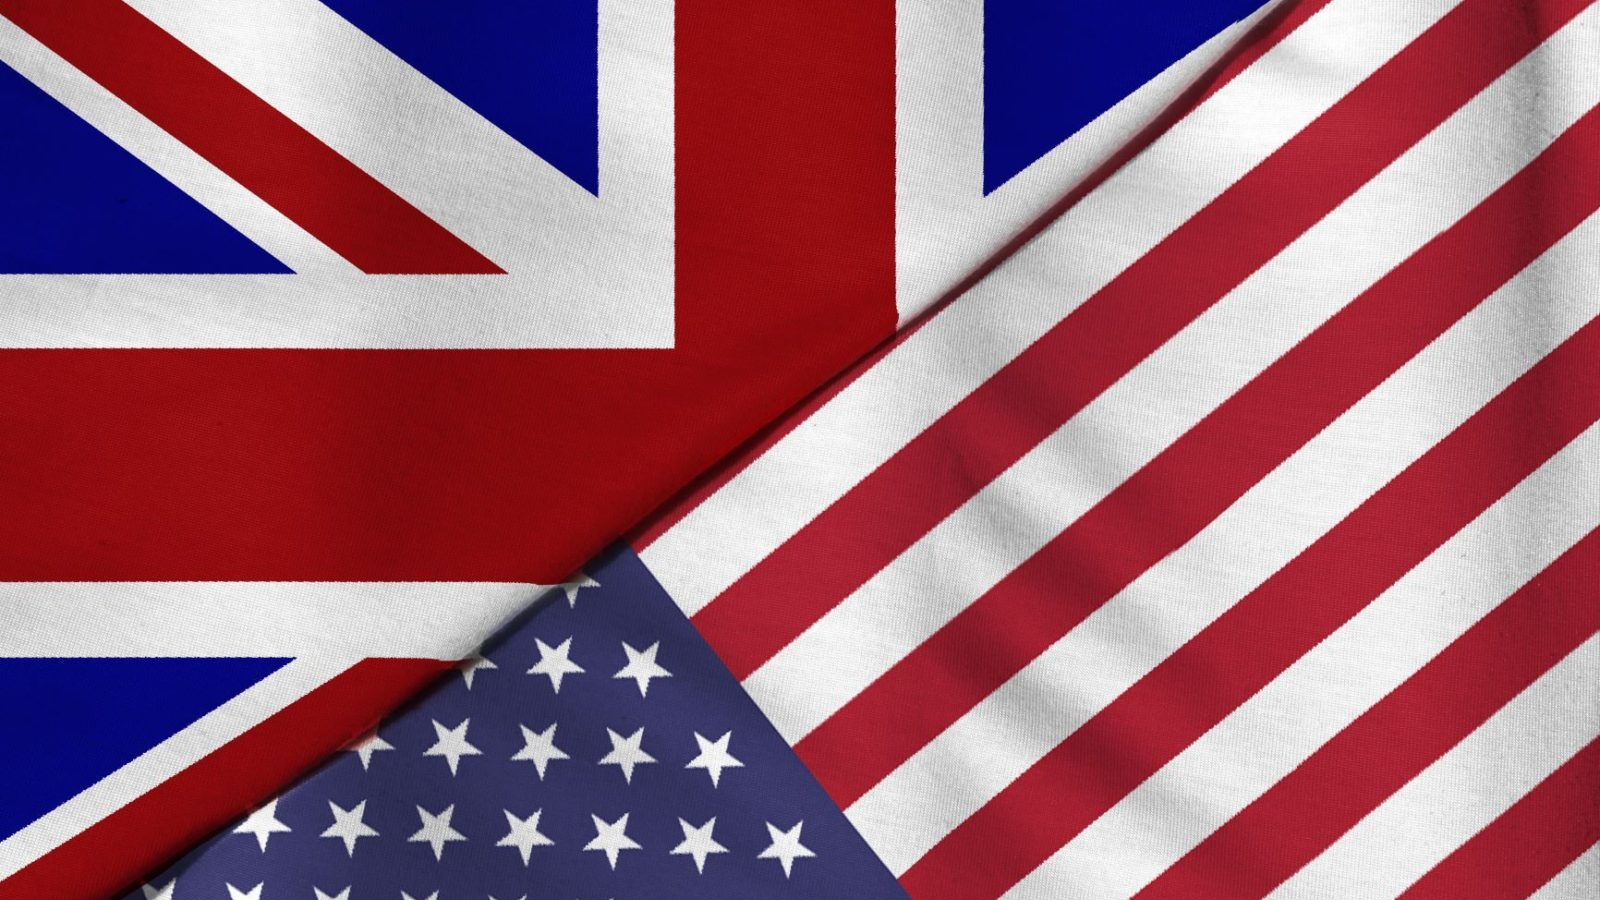 The UK and US are to open formal trade negotiations on a future trade agreement